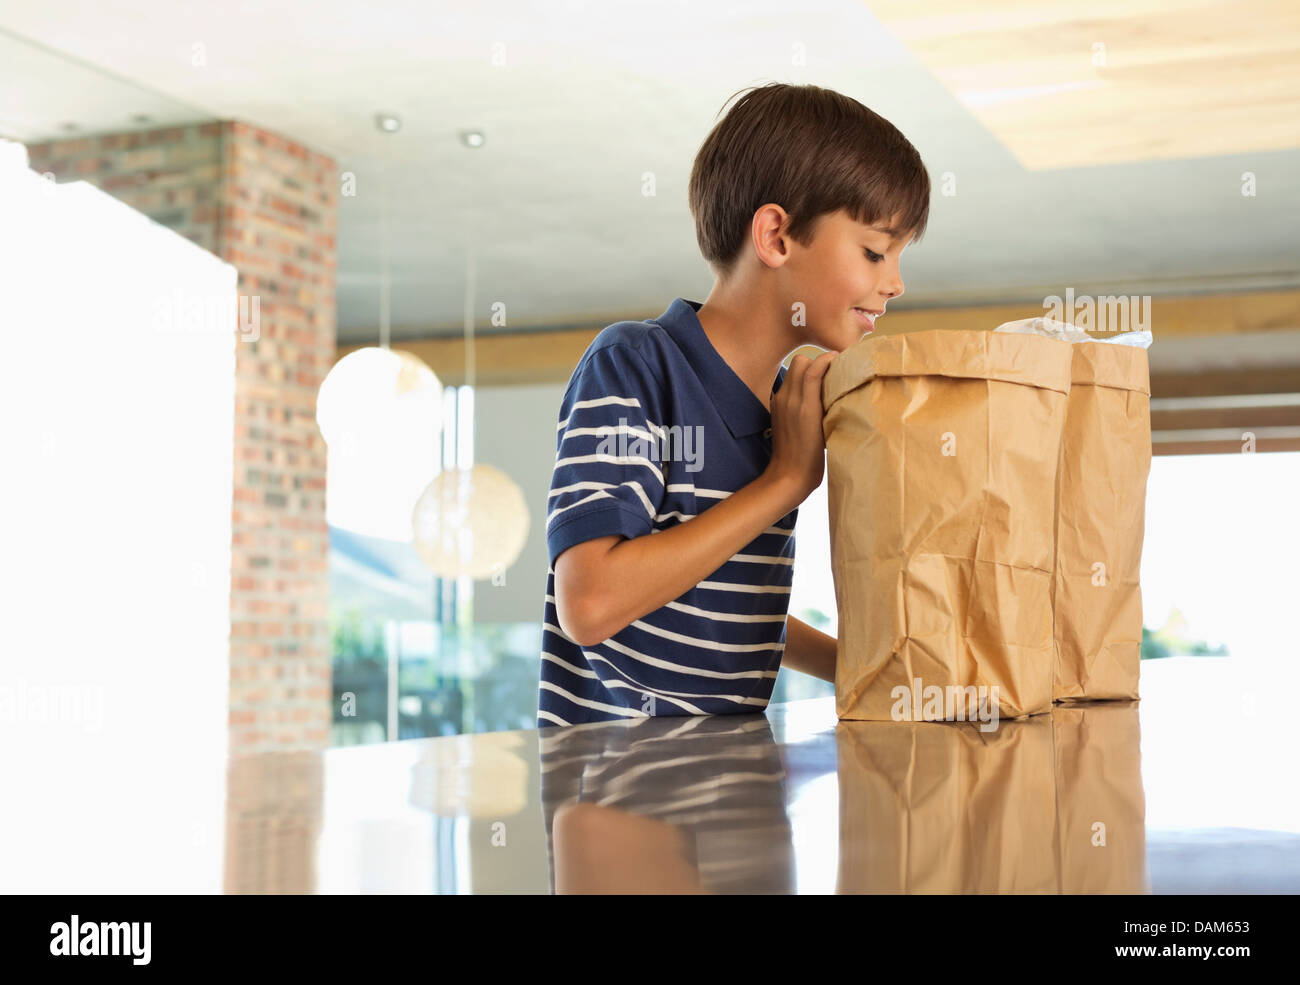 Boy looking through paper bag in kitchen - Stock Image